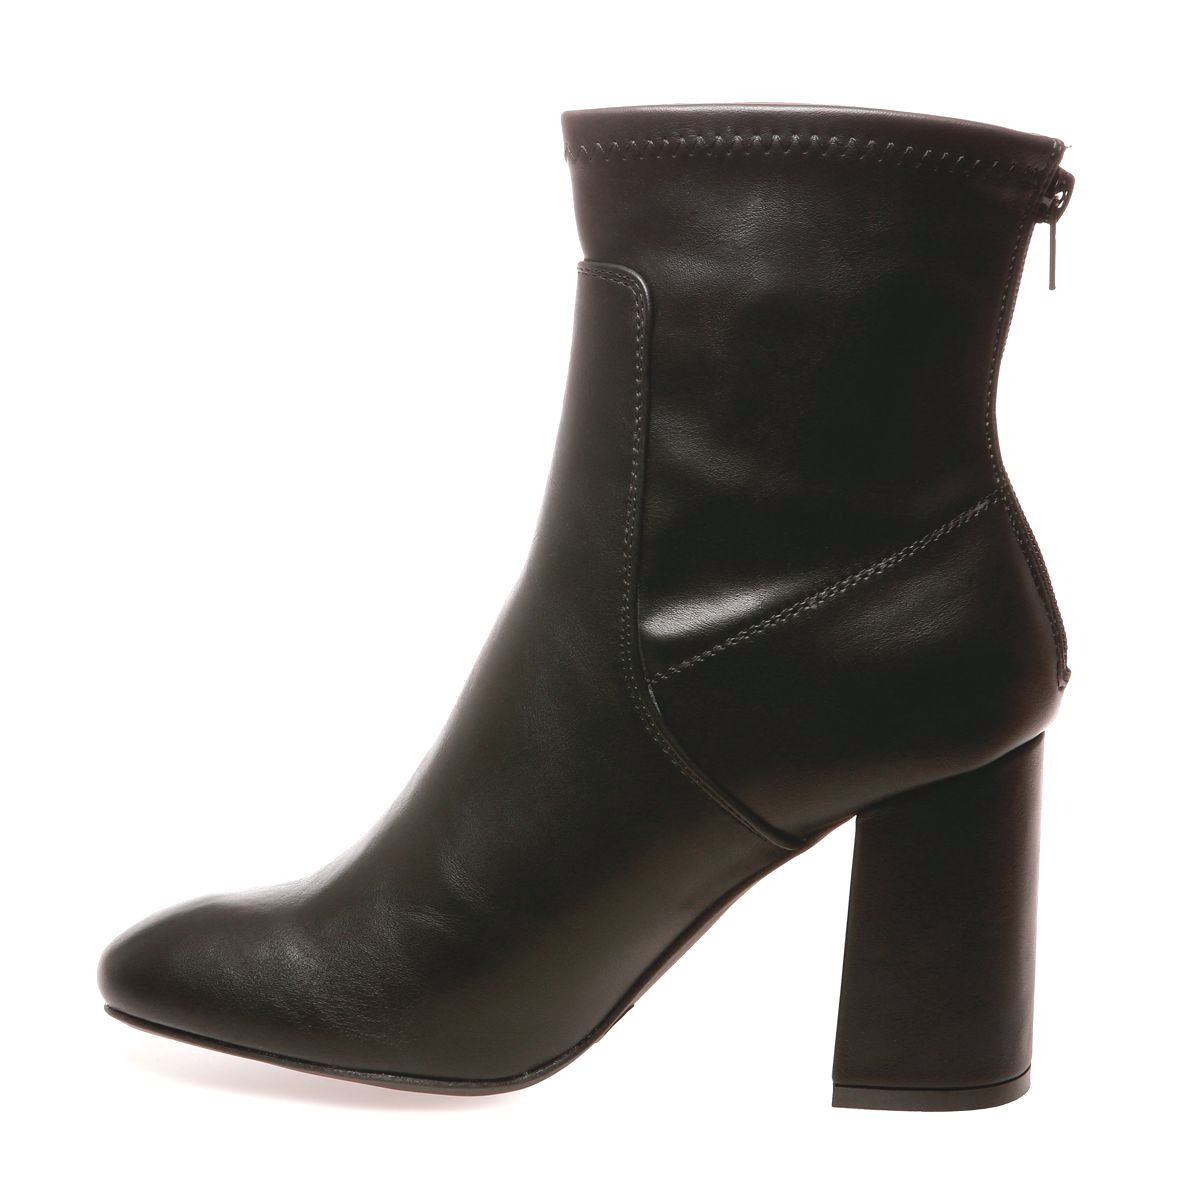 Bottines simili cuir noires à talons